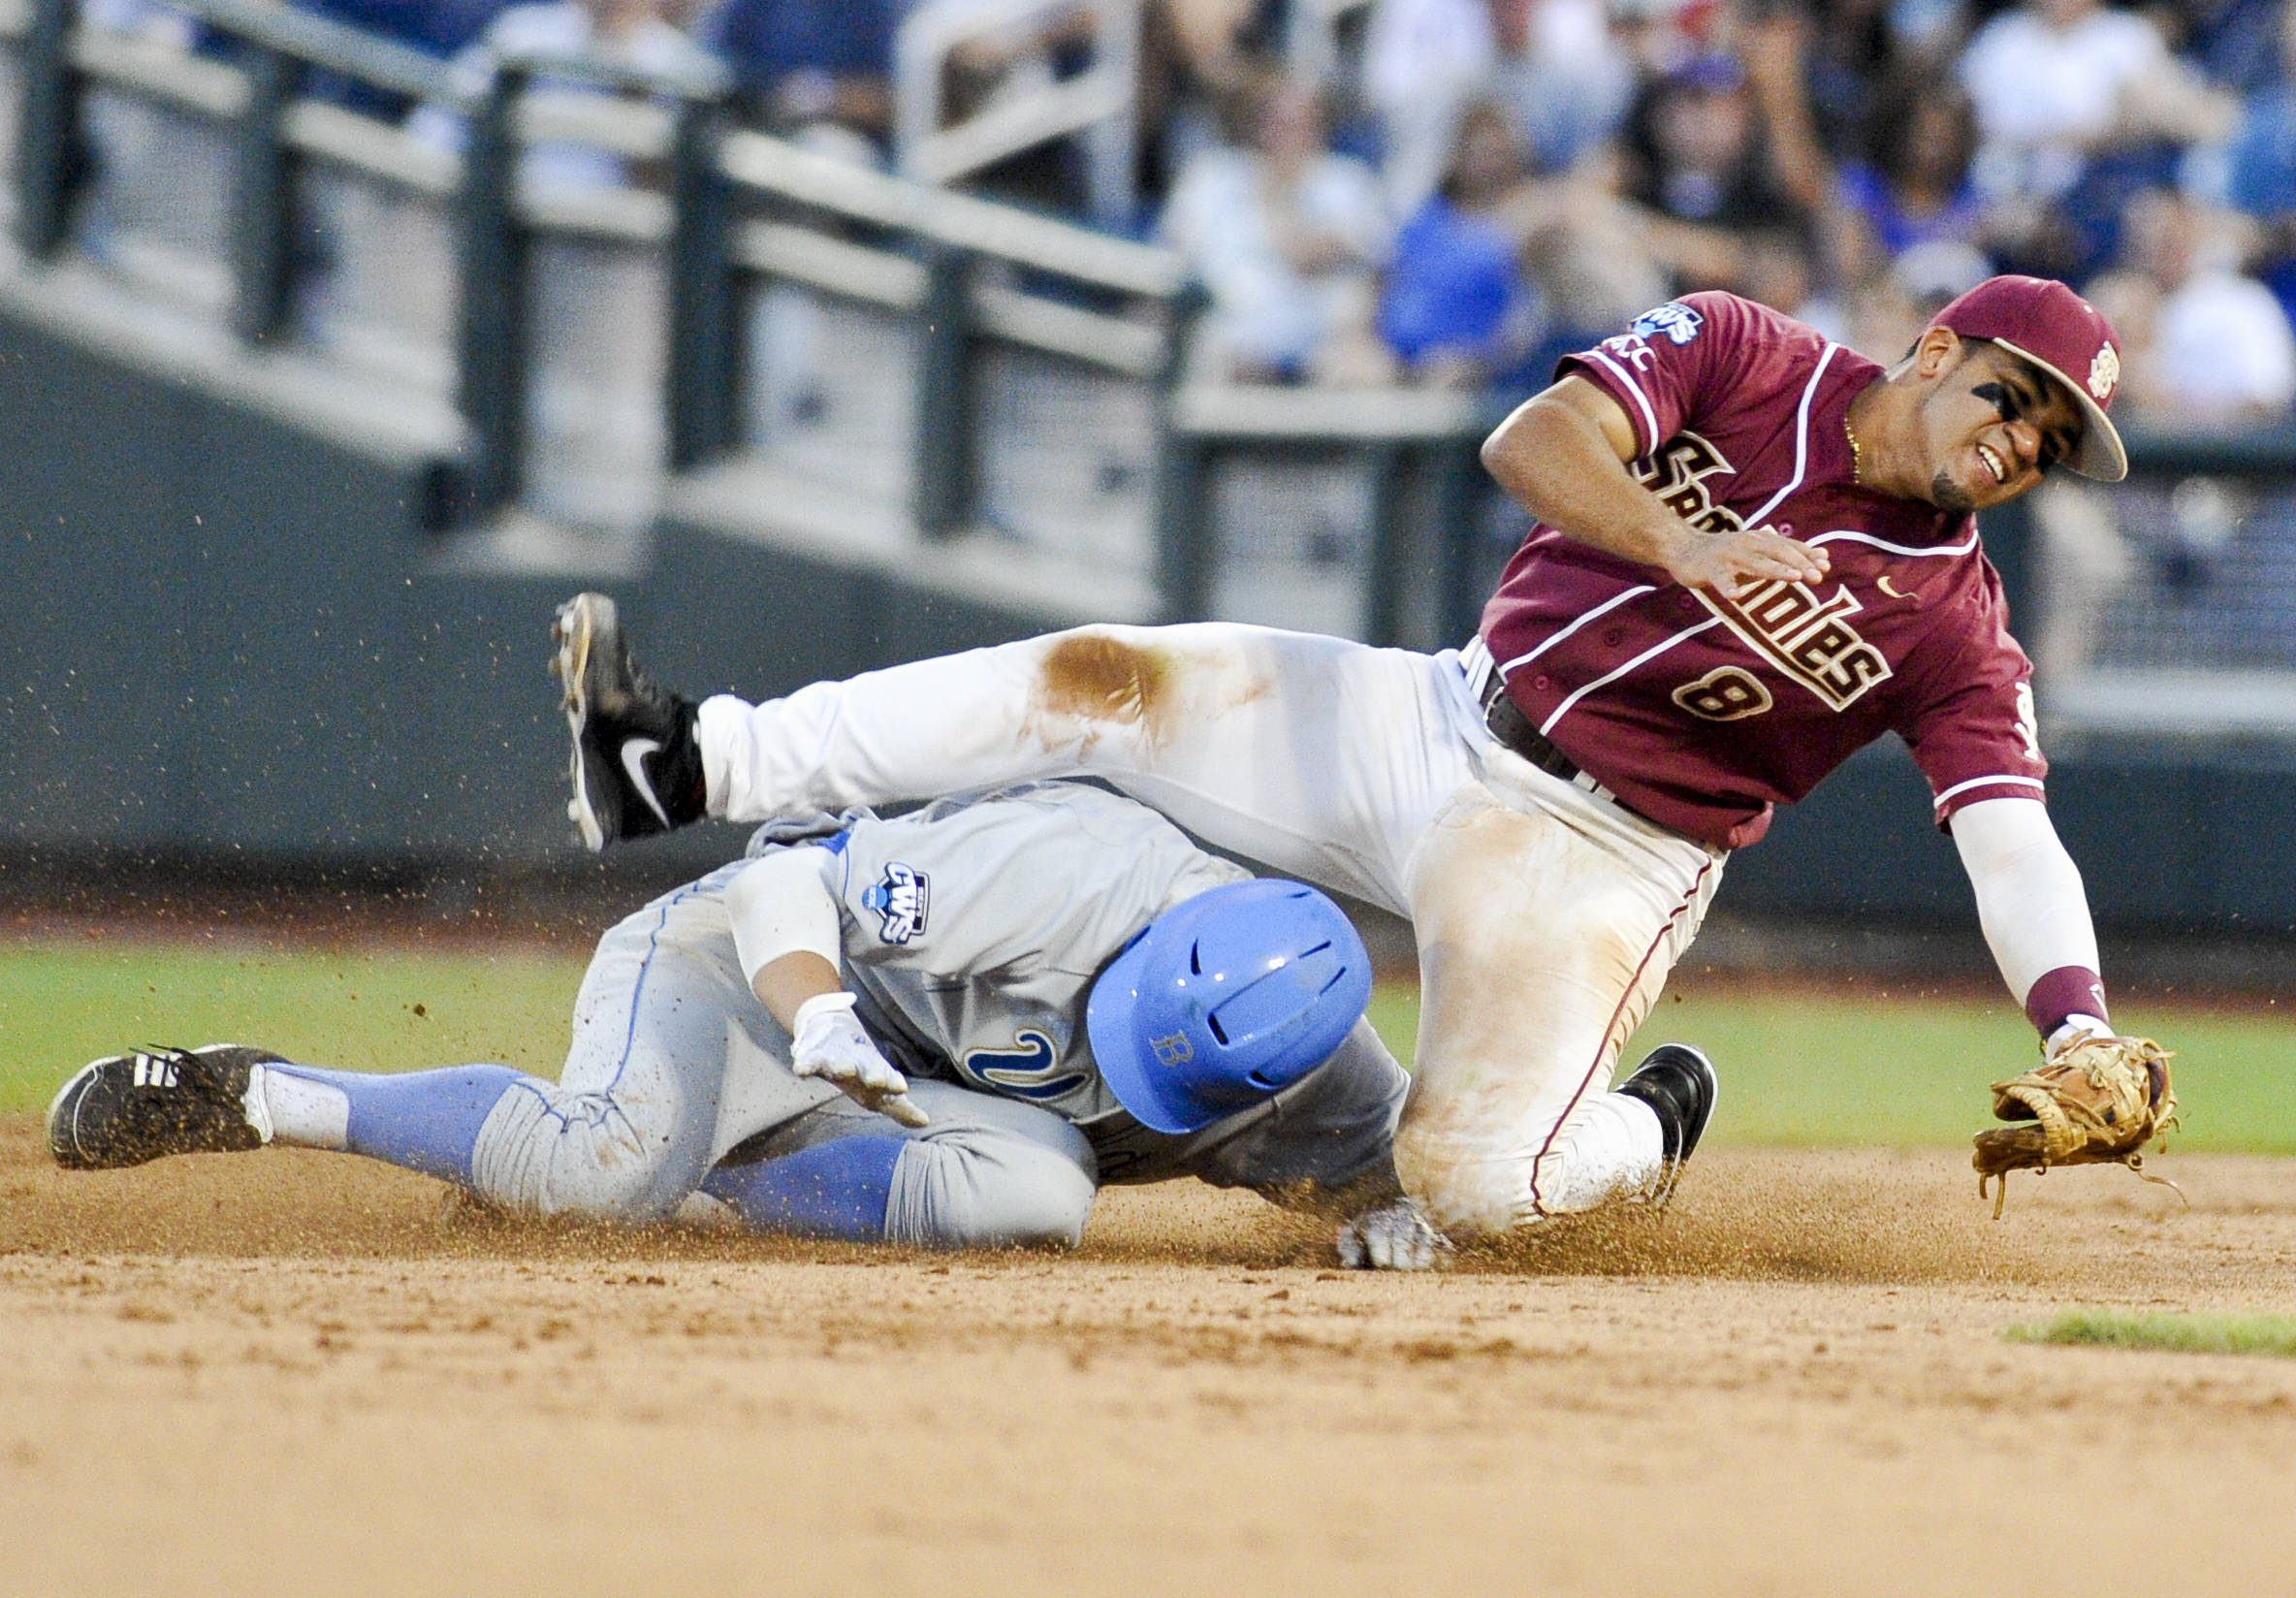 UCLA's Trevor Brown is out at second base as Florida State second baseman Devon Travis stumbles over him in the fifth inning. UCLA's Cody Regis reached first base on a fielder's choice in the play. (AP Photo/Eric Francis)